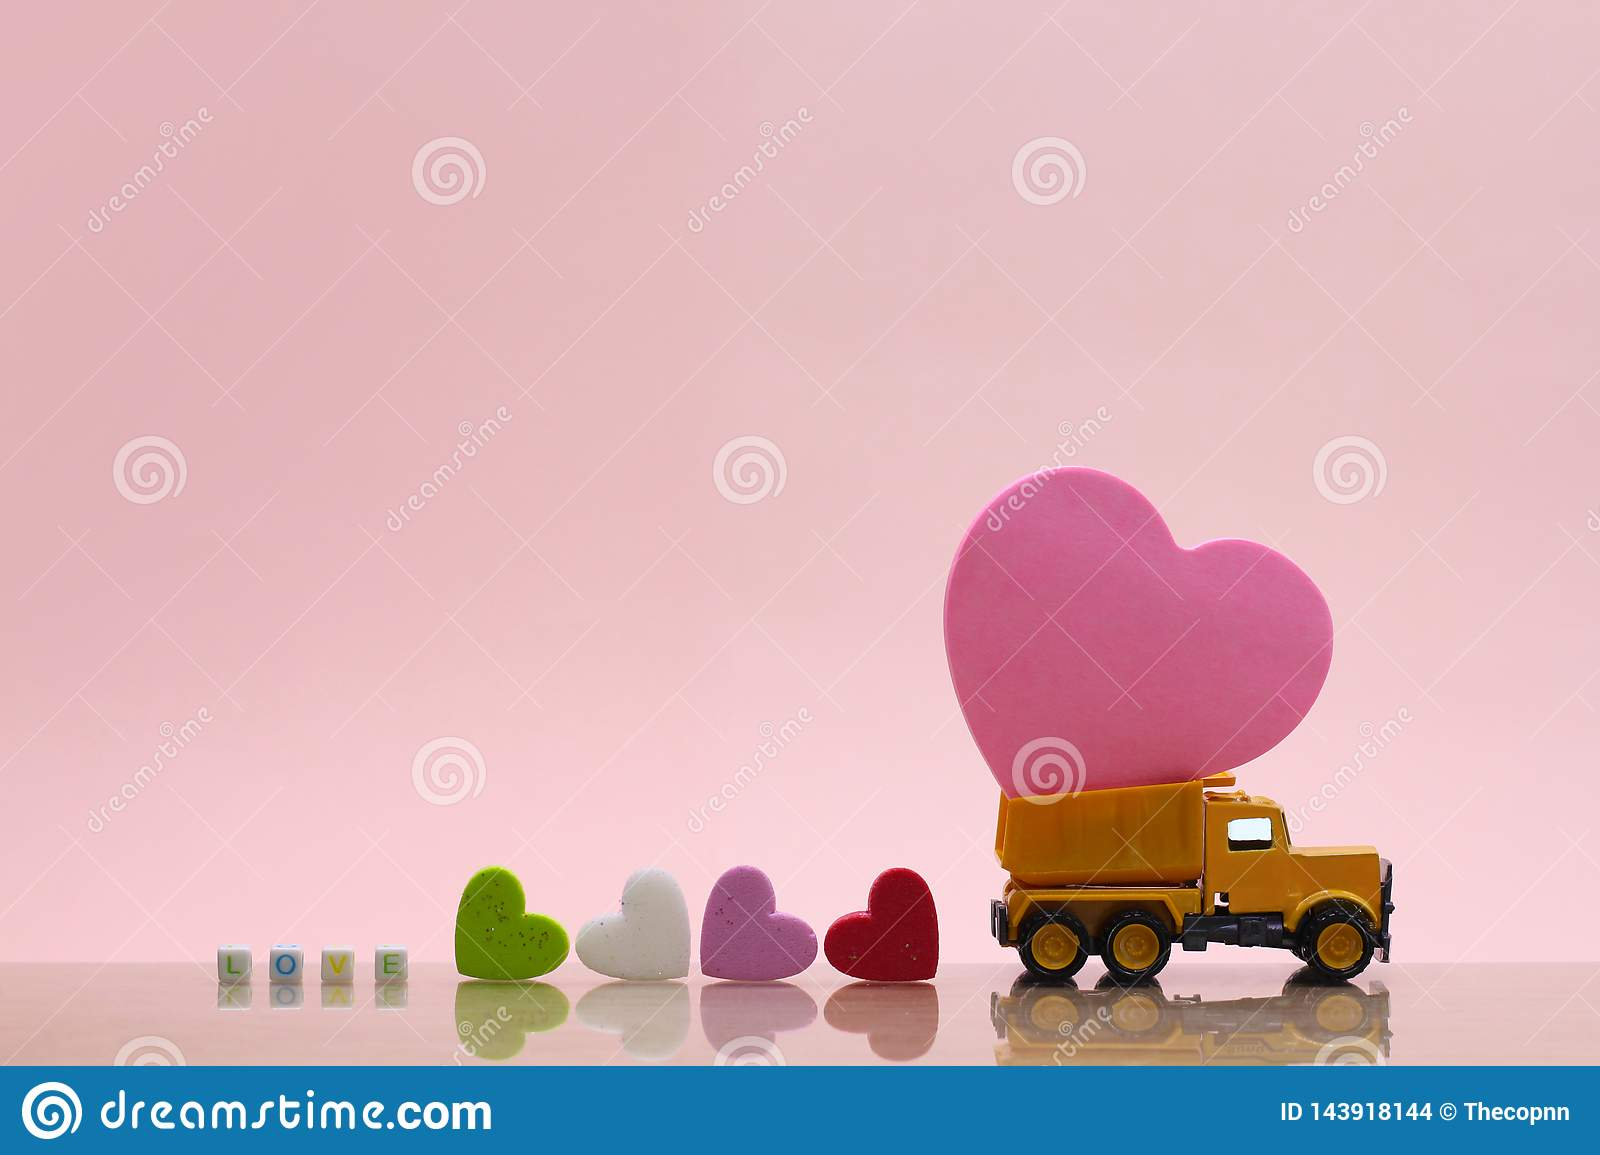 Yellow toy truck carry on pink heart on pink background